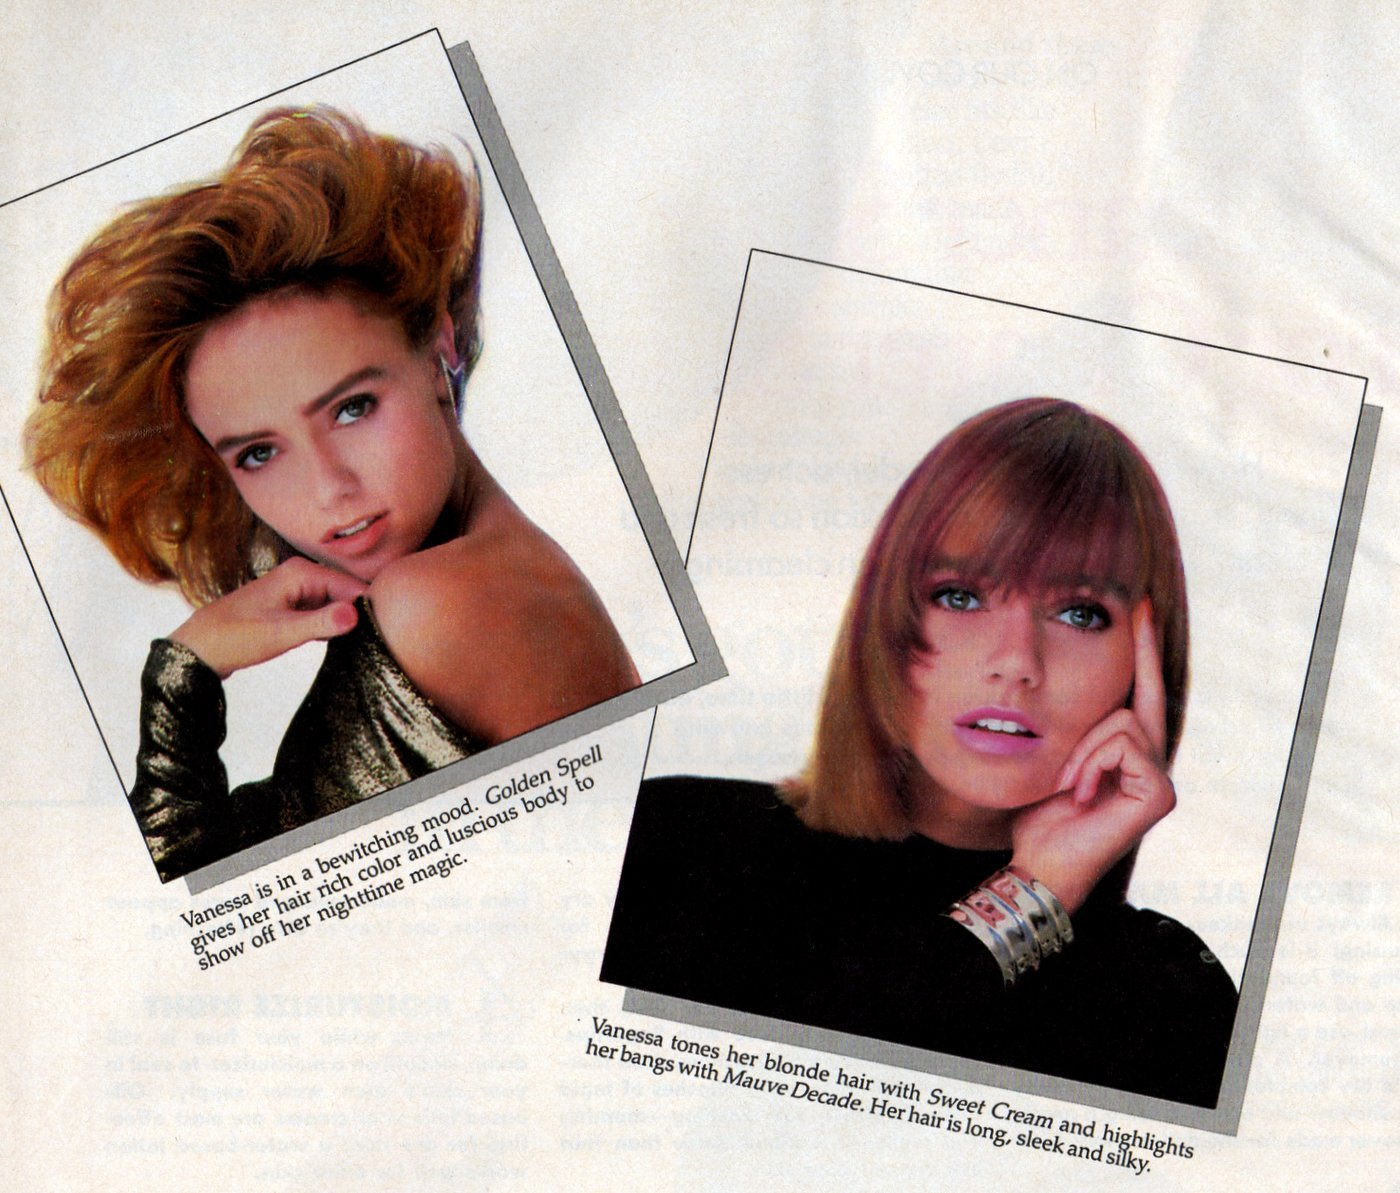 80s hairstyles from 1986 - Retro (2)